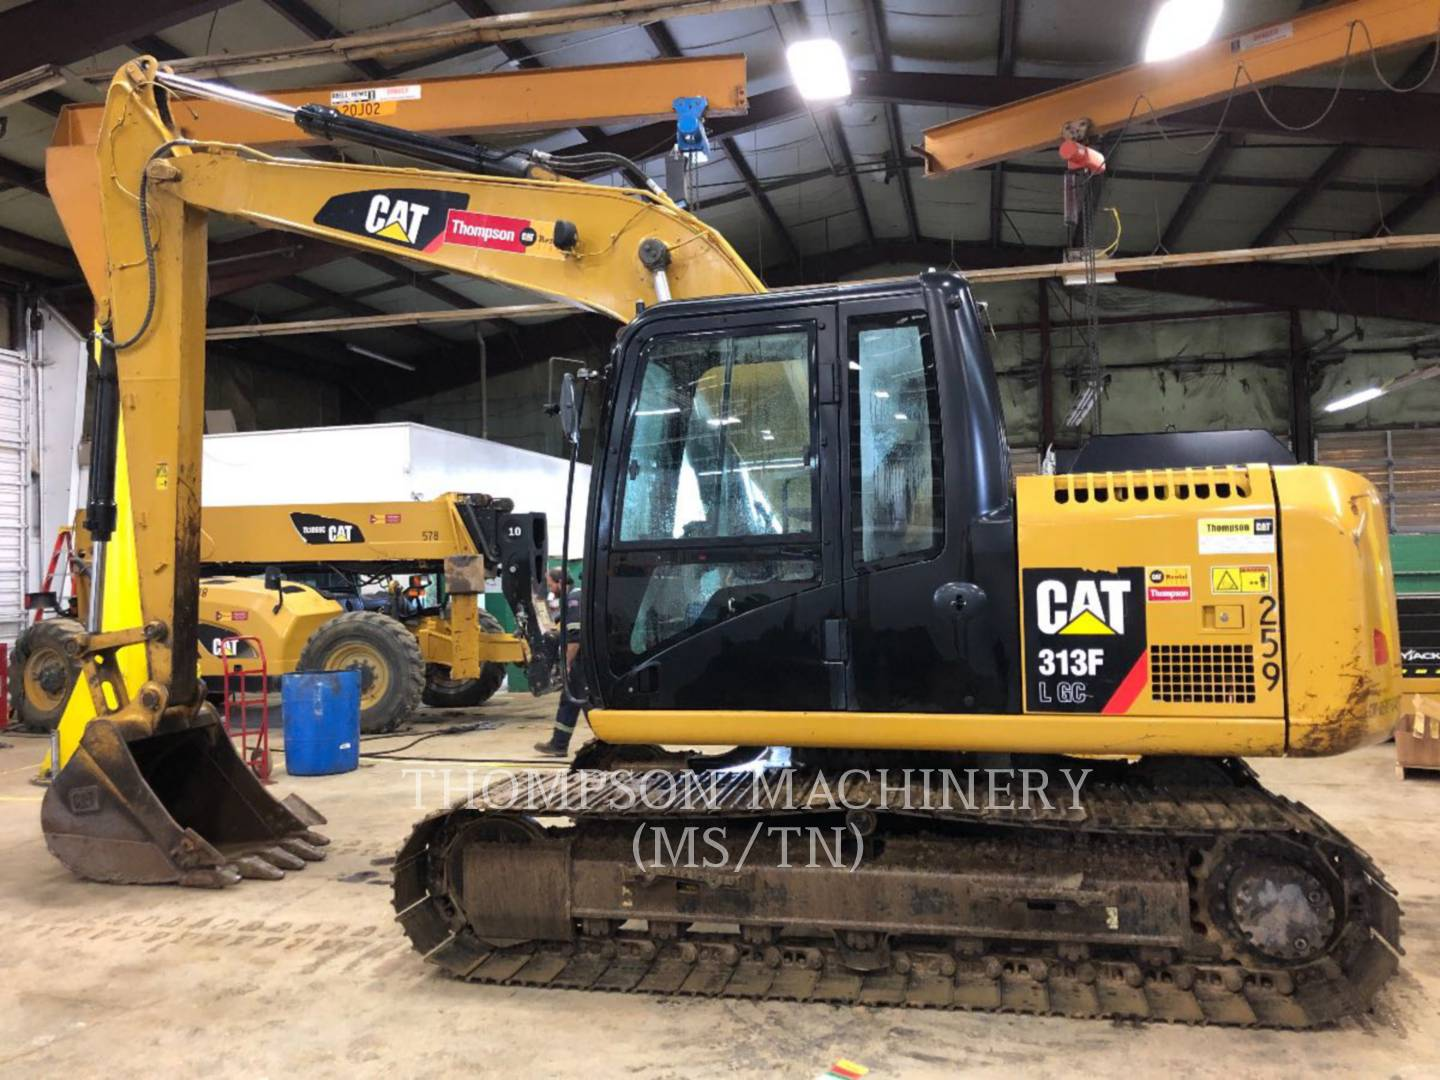 Used Large, Medium & Mini Excavators for Sale | Thompson